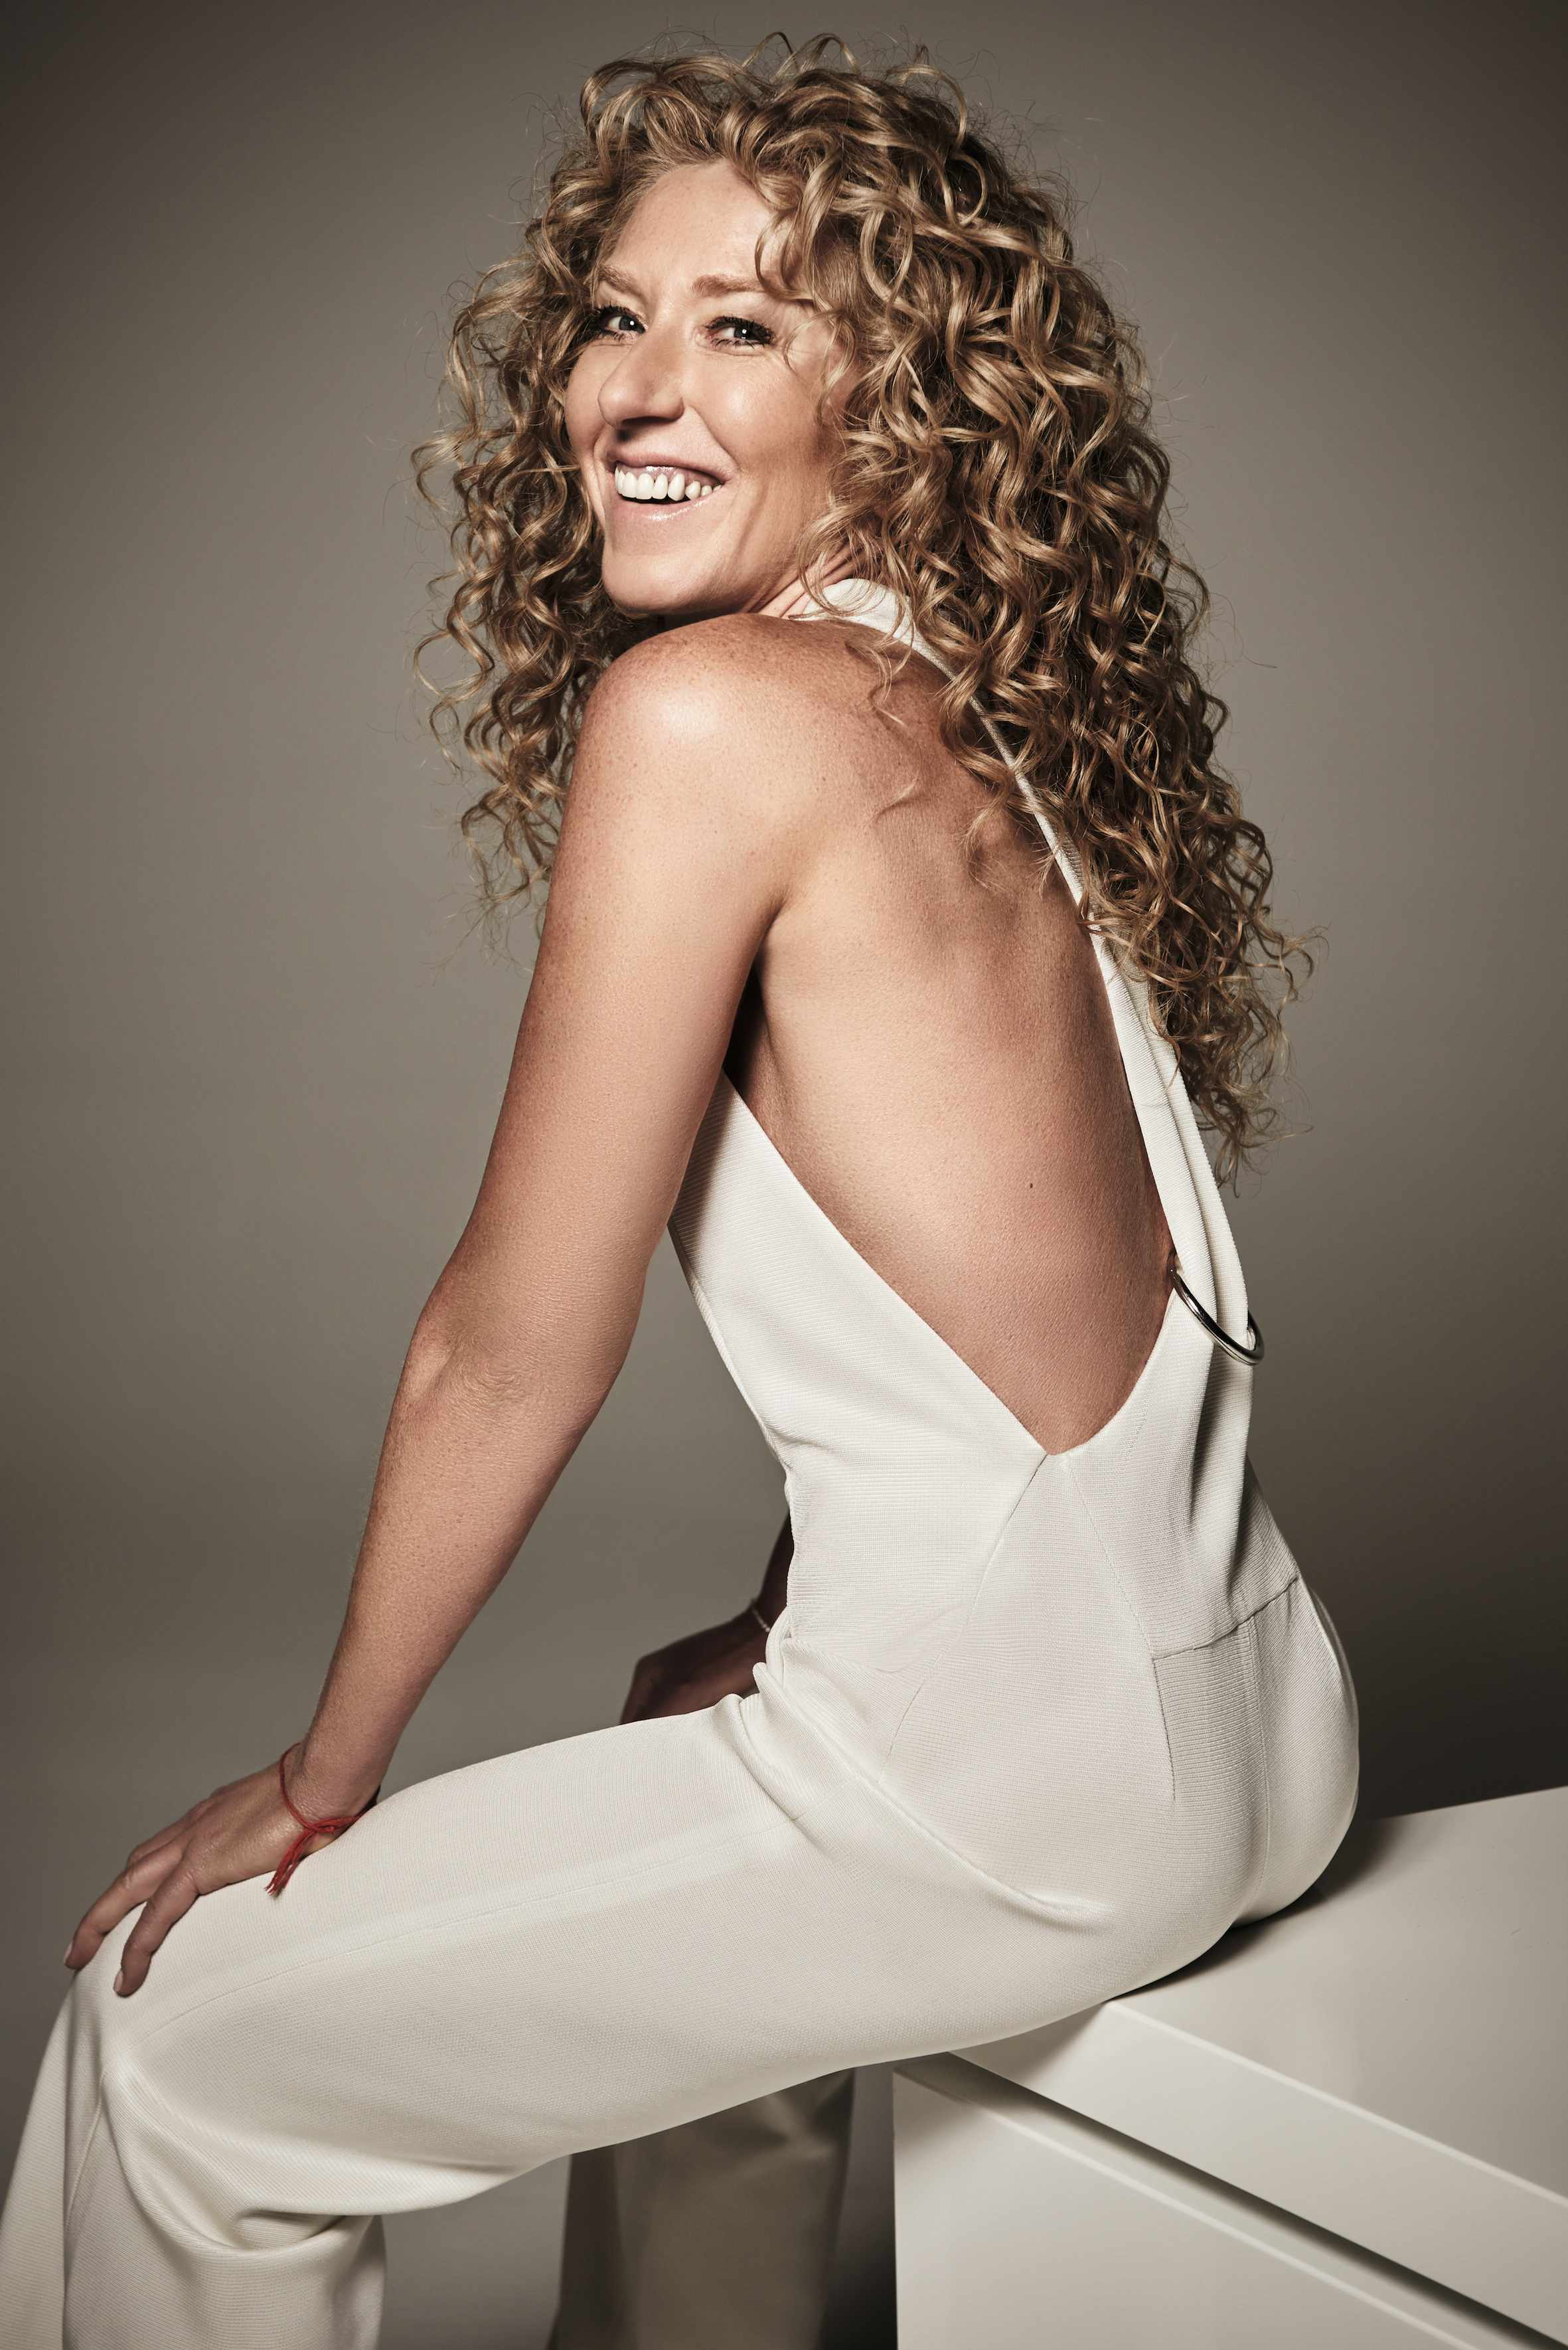 A portrait of Kelly Hoppen in a white jumpsuit